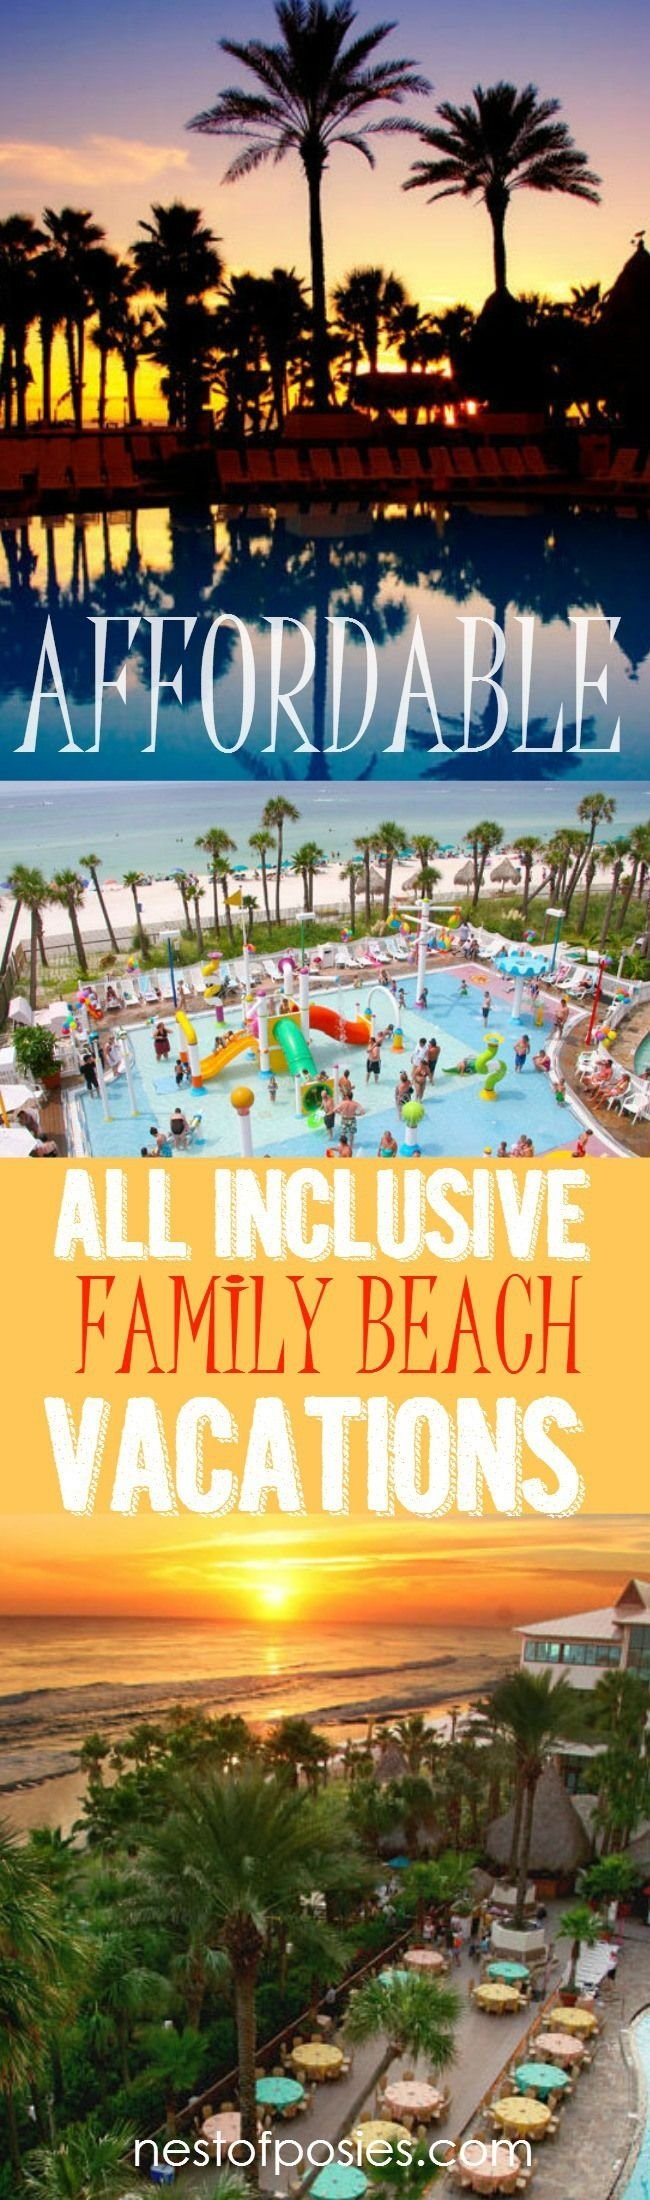 10 Nice Spring Break Trip Ideas For Families 22 best all inclusive resorts images on pinterest dream vacations 1 2021